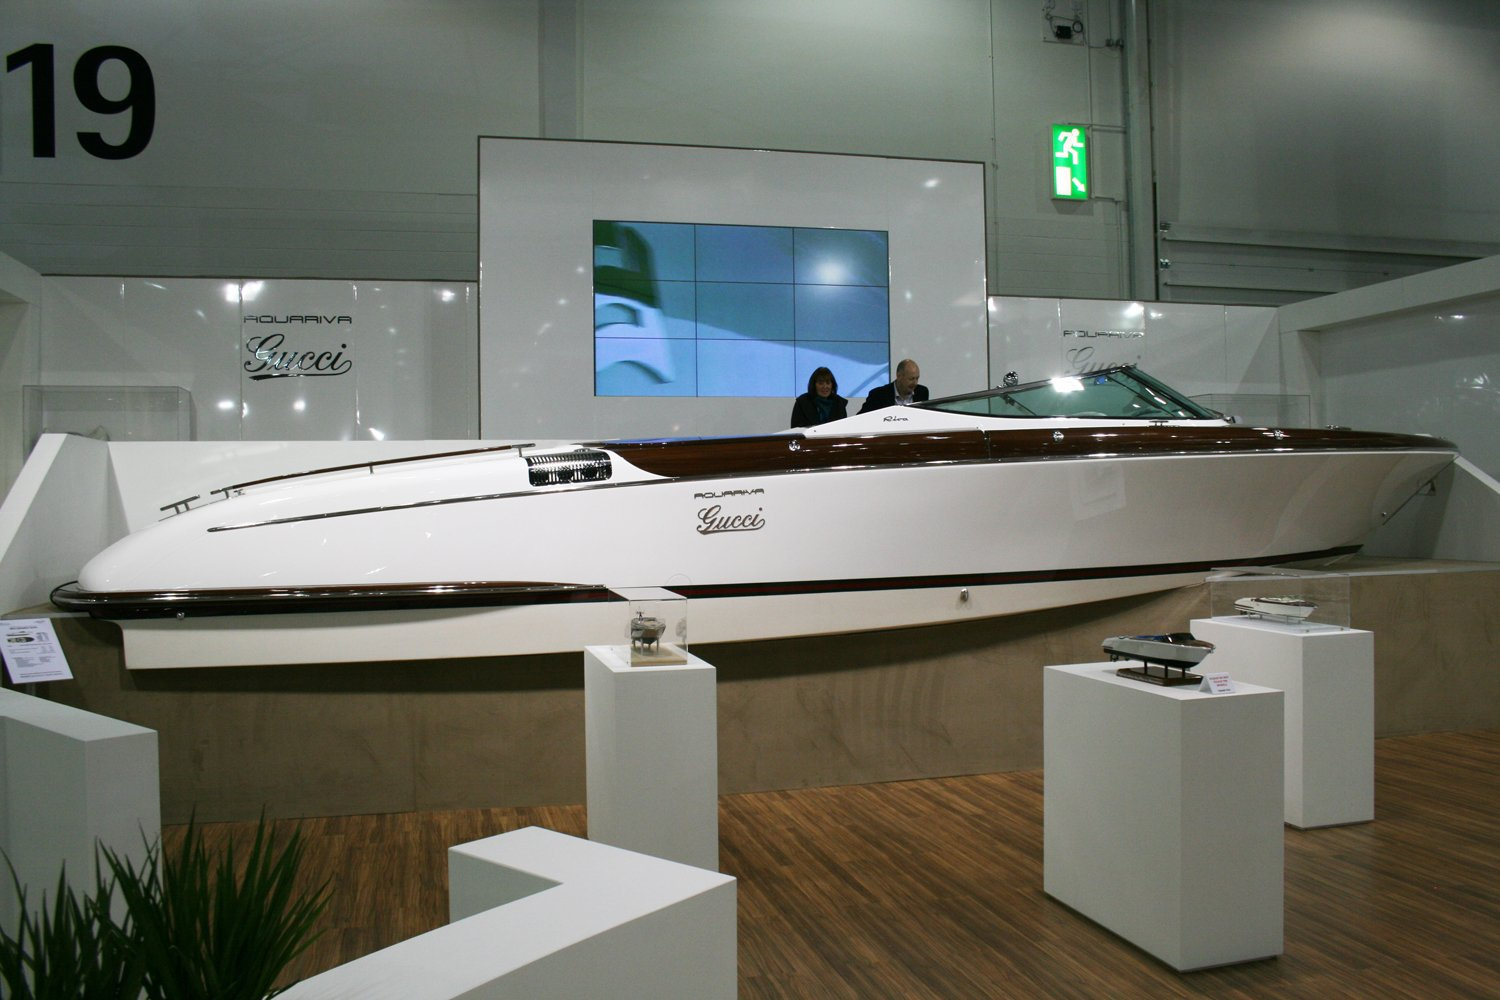 The  Aquariva by Gucci  Luxury Tender at the..   superyachts.com bb99780ad75